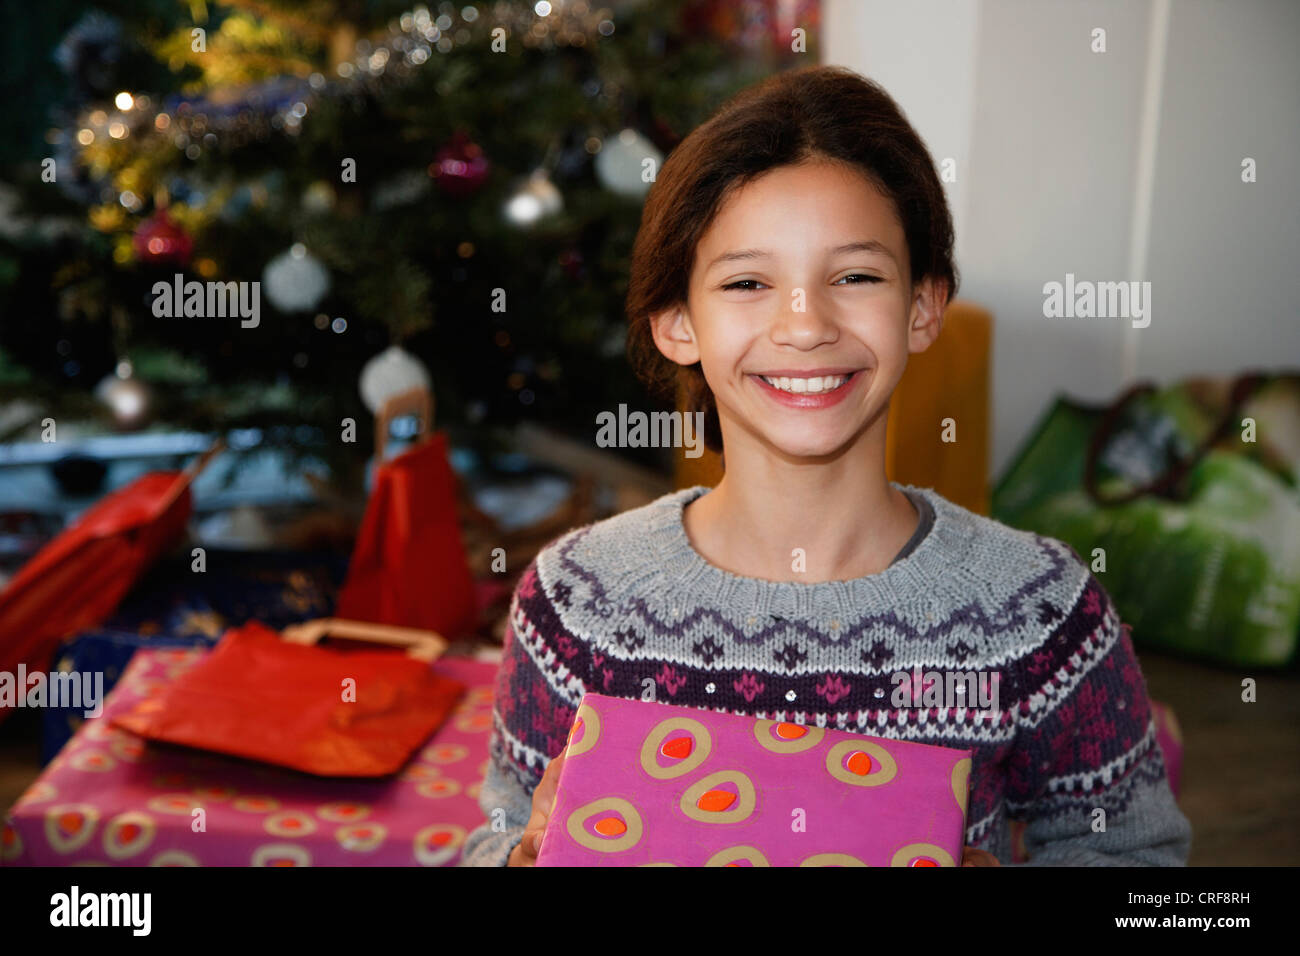 Smiling girl holding Christmas present - Stock Image